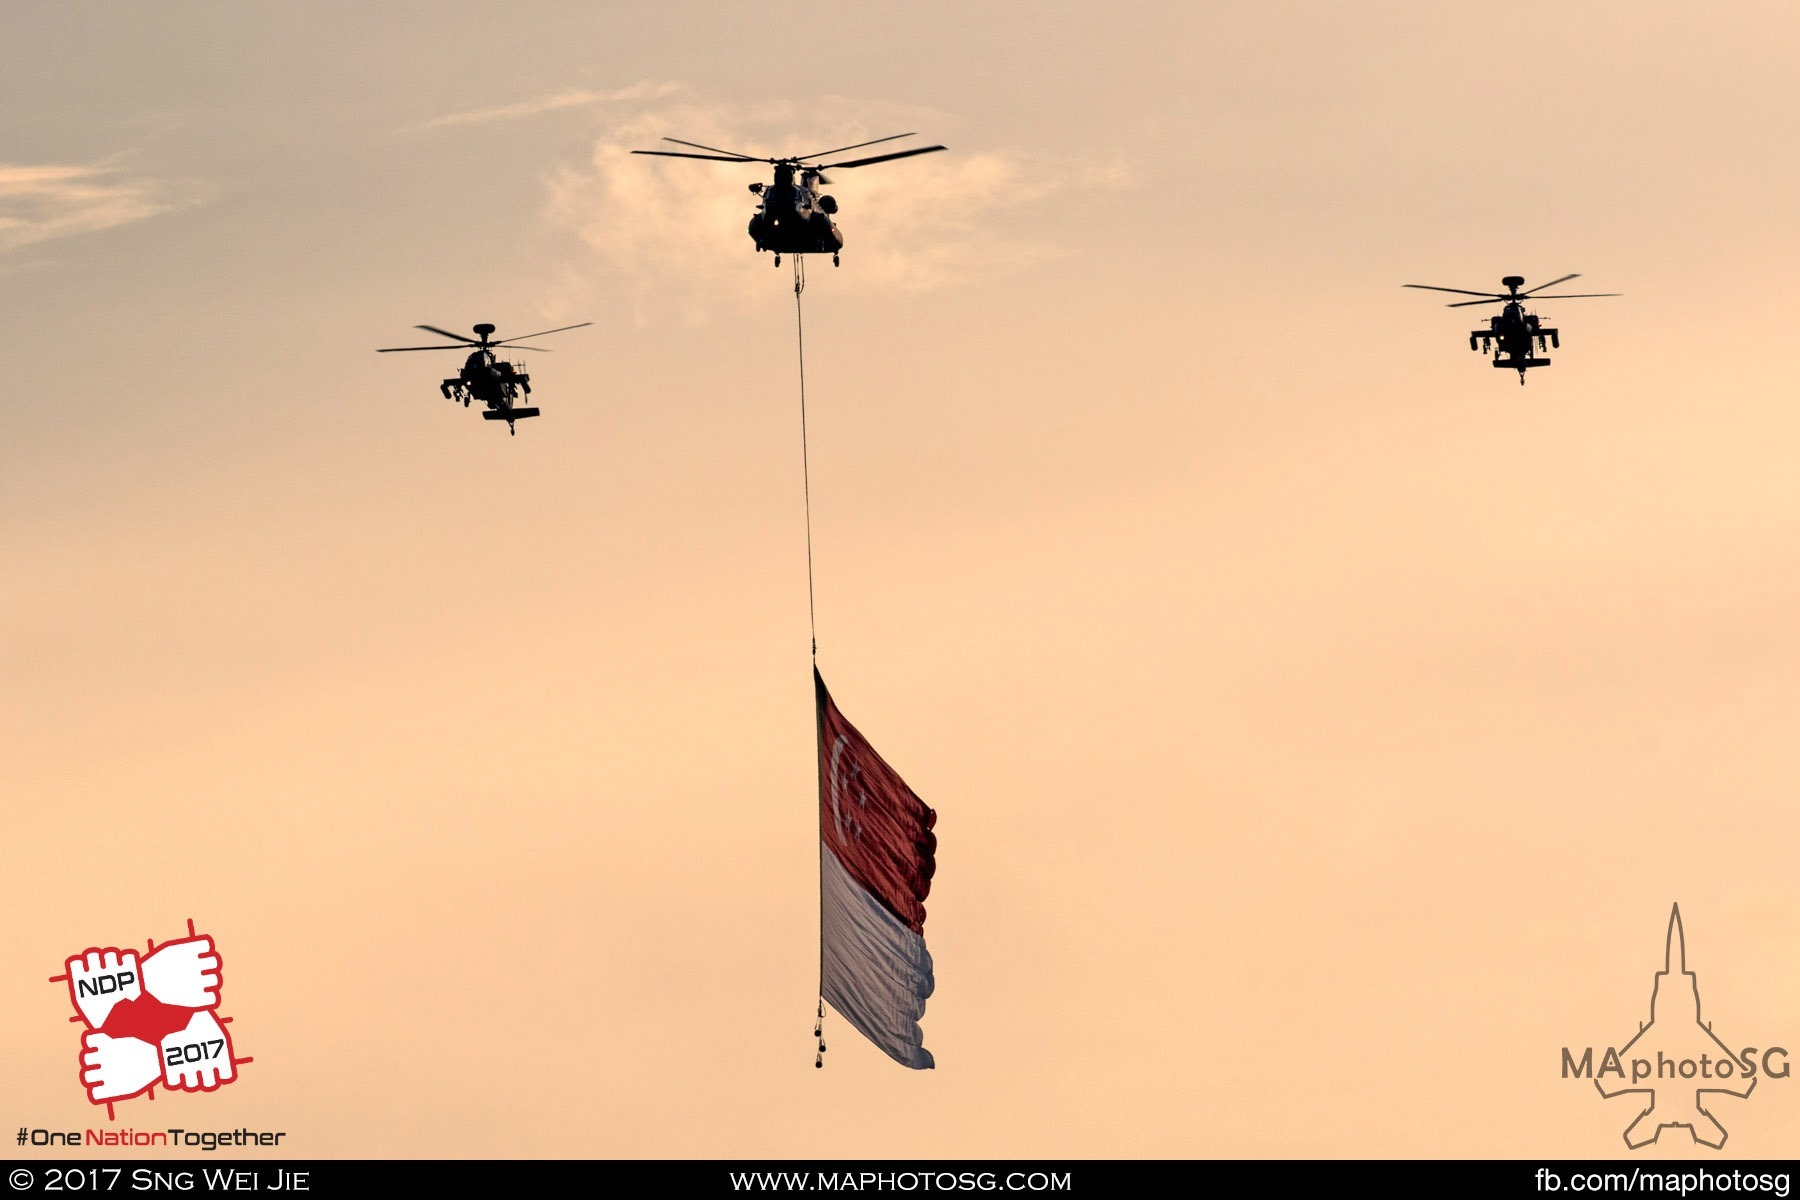 19. RSAF CH-47D Chinook escorted by 2 AH-64D Apache Longbows flies the massive state flag as the National Anthem is being sang.